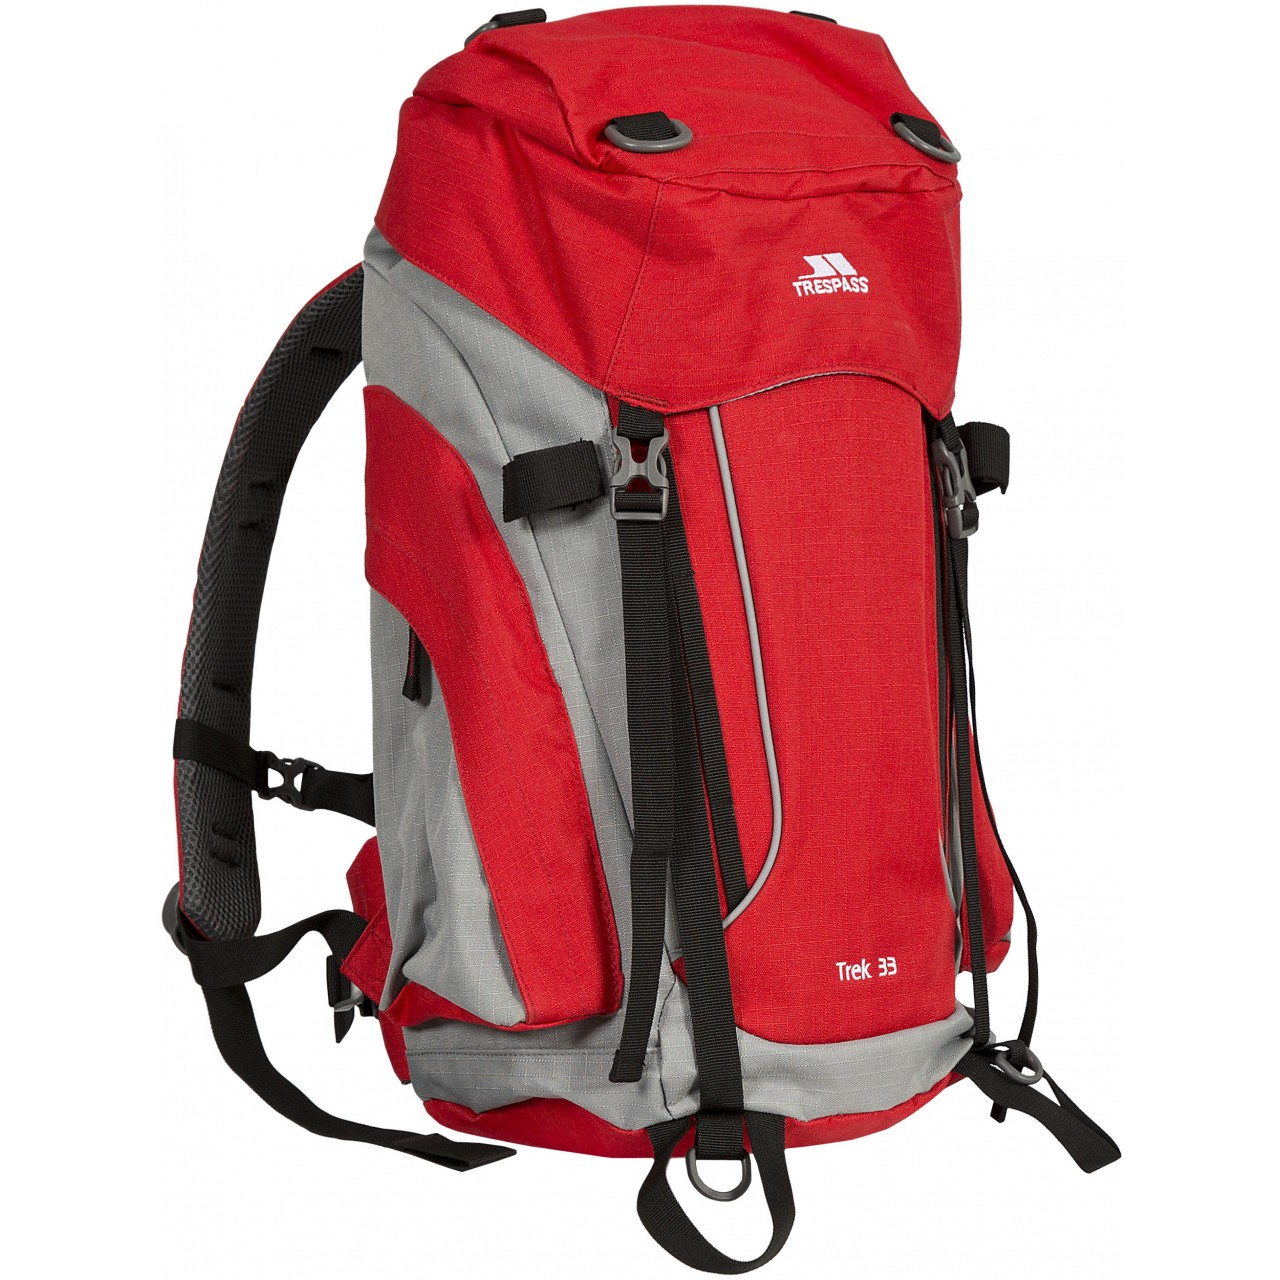 Travel Rucksack How To Choose A Travel Backpack Trespass Advice